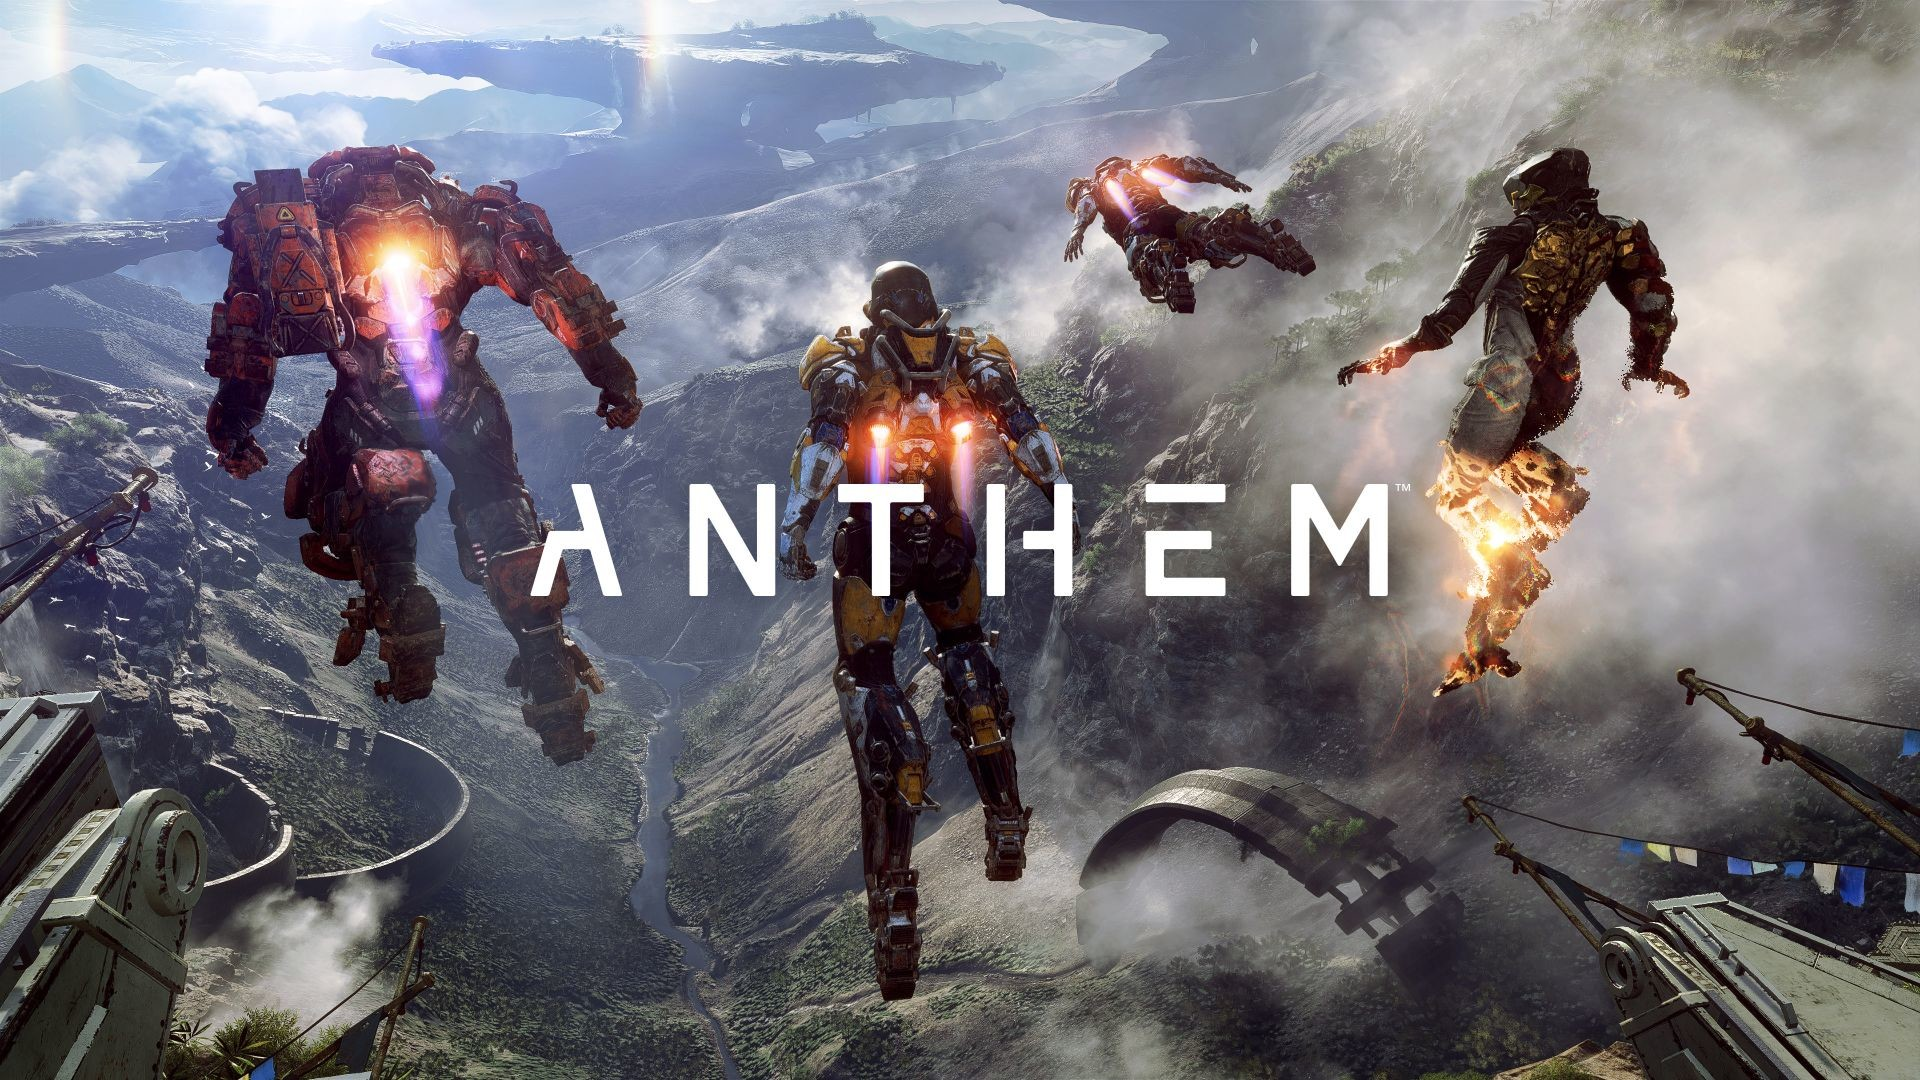 anthem 4k poster e3 2017 cool video game wallpapers